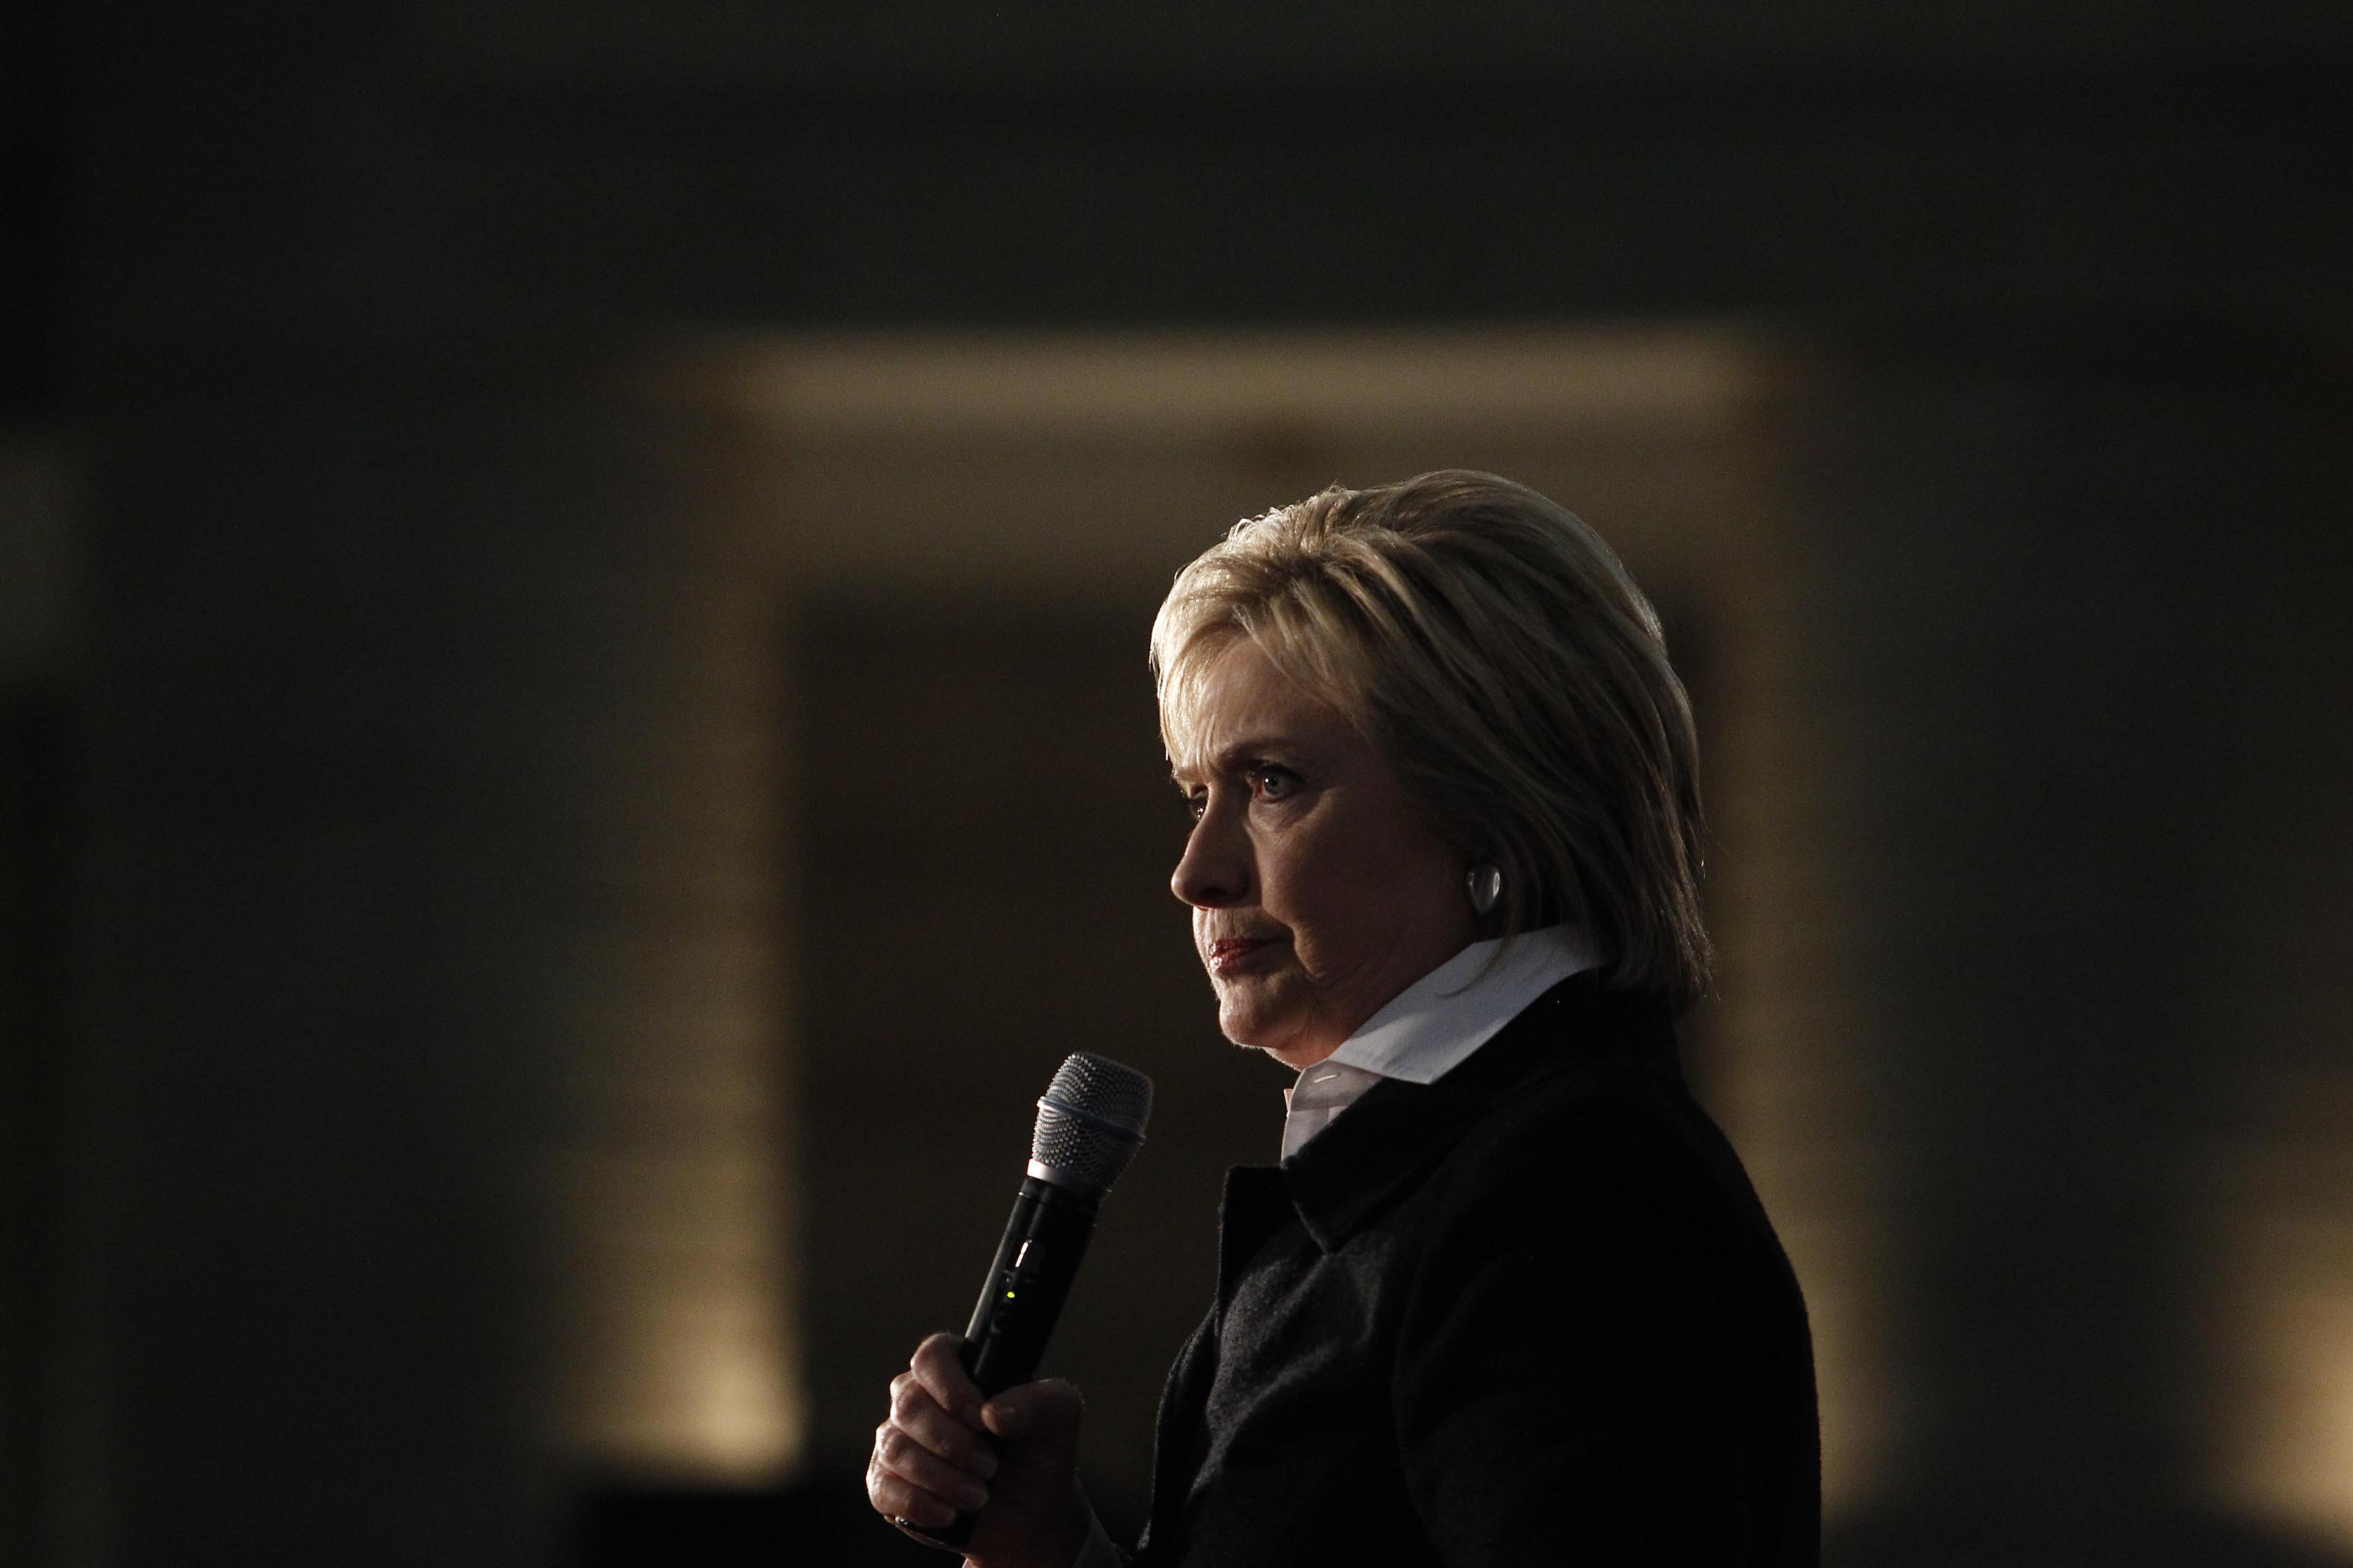 Detroit, MI - March 7: Democratic Presidential Candidate Hillary Clinton speaks at the Charles H. Wright Museum of African American History, March 7, 2016, in Detroit, Michigan. Clinton is campaigning in Michigan ahead of the primary on March 8. (Photo by J.D. Pooley/Getty Images)